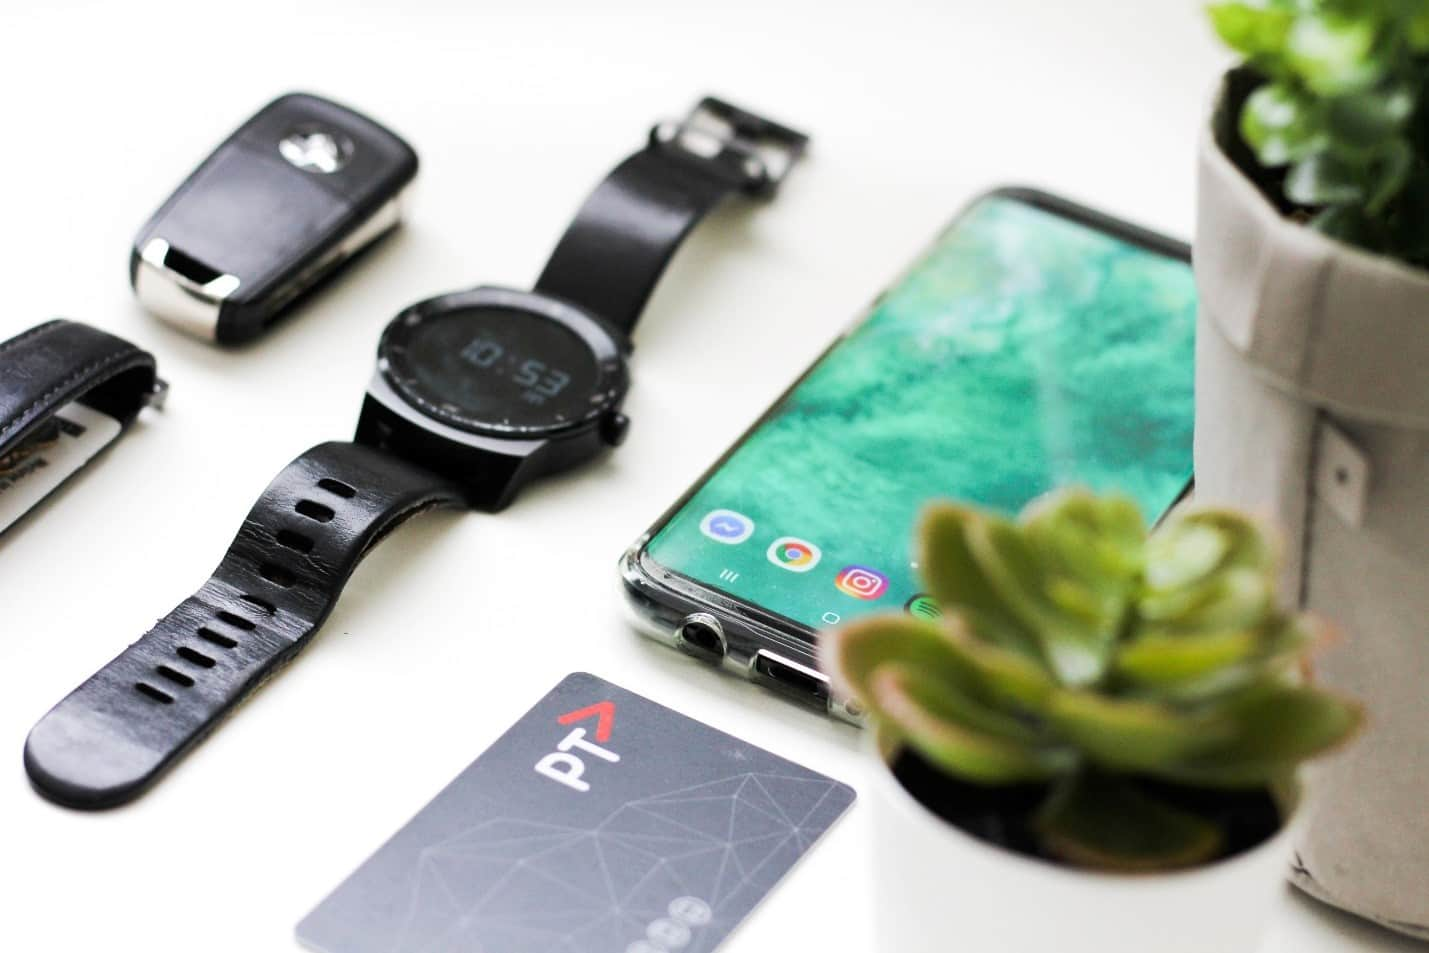 content/nl-nl/images/repository/isc/2020/9910/should-you-worry-about-smartwatch-security-1.jpg